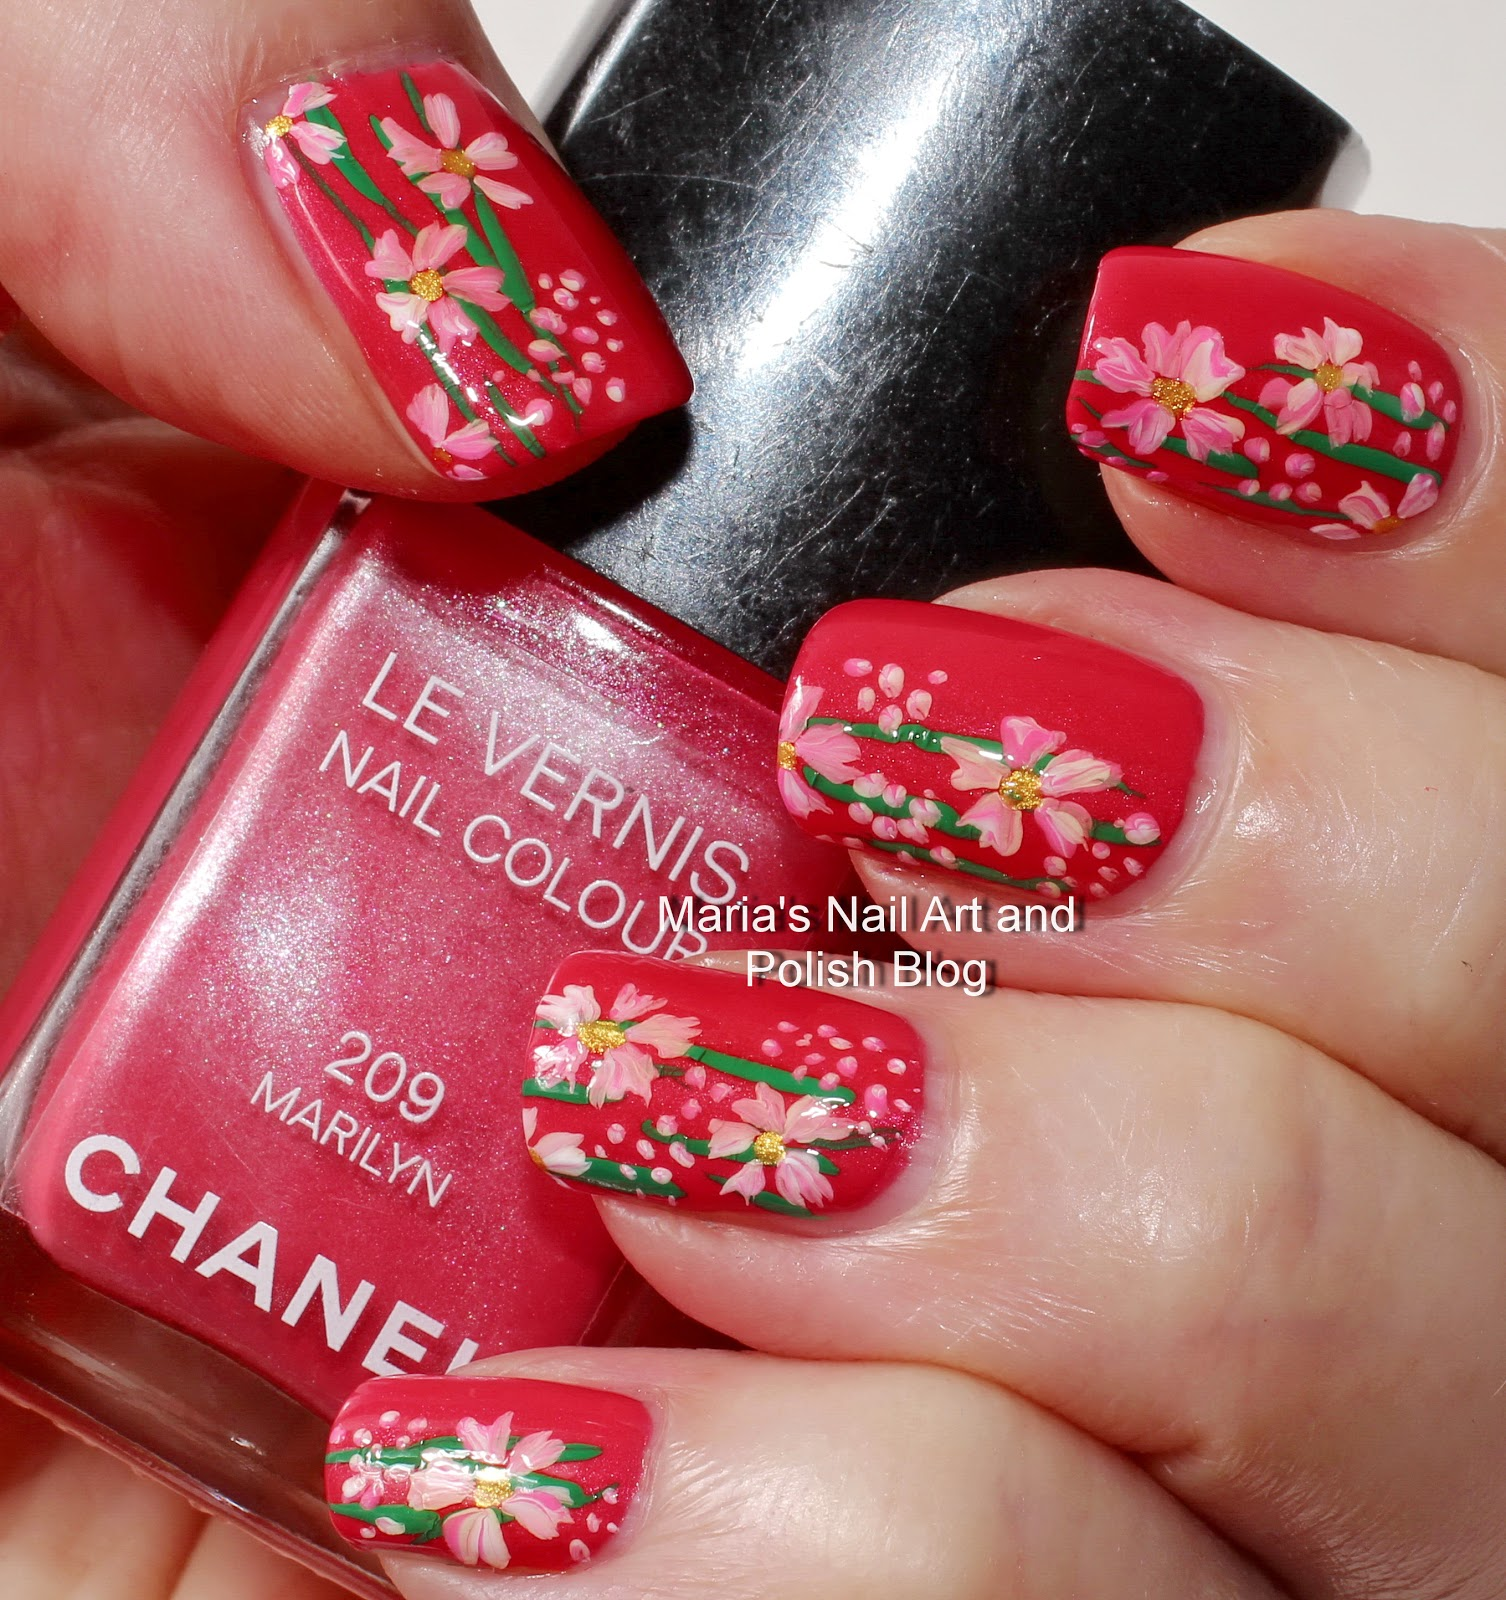 Marias Nail Art And Polish Blog Subtle Floral Nail Art On: Marias Nail Art And Polish Blog: Marilyn Likes Flowers